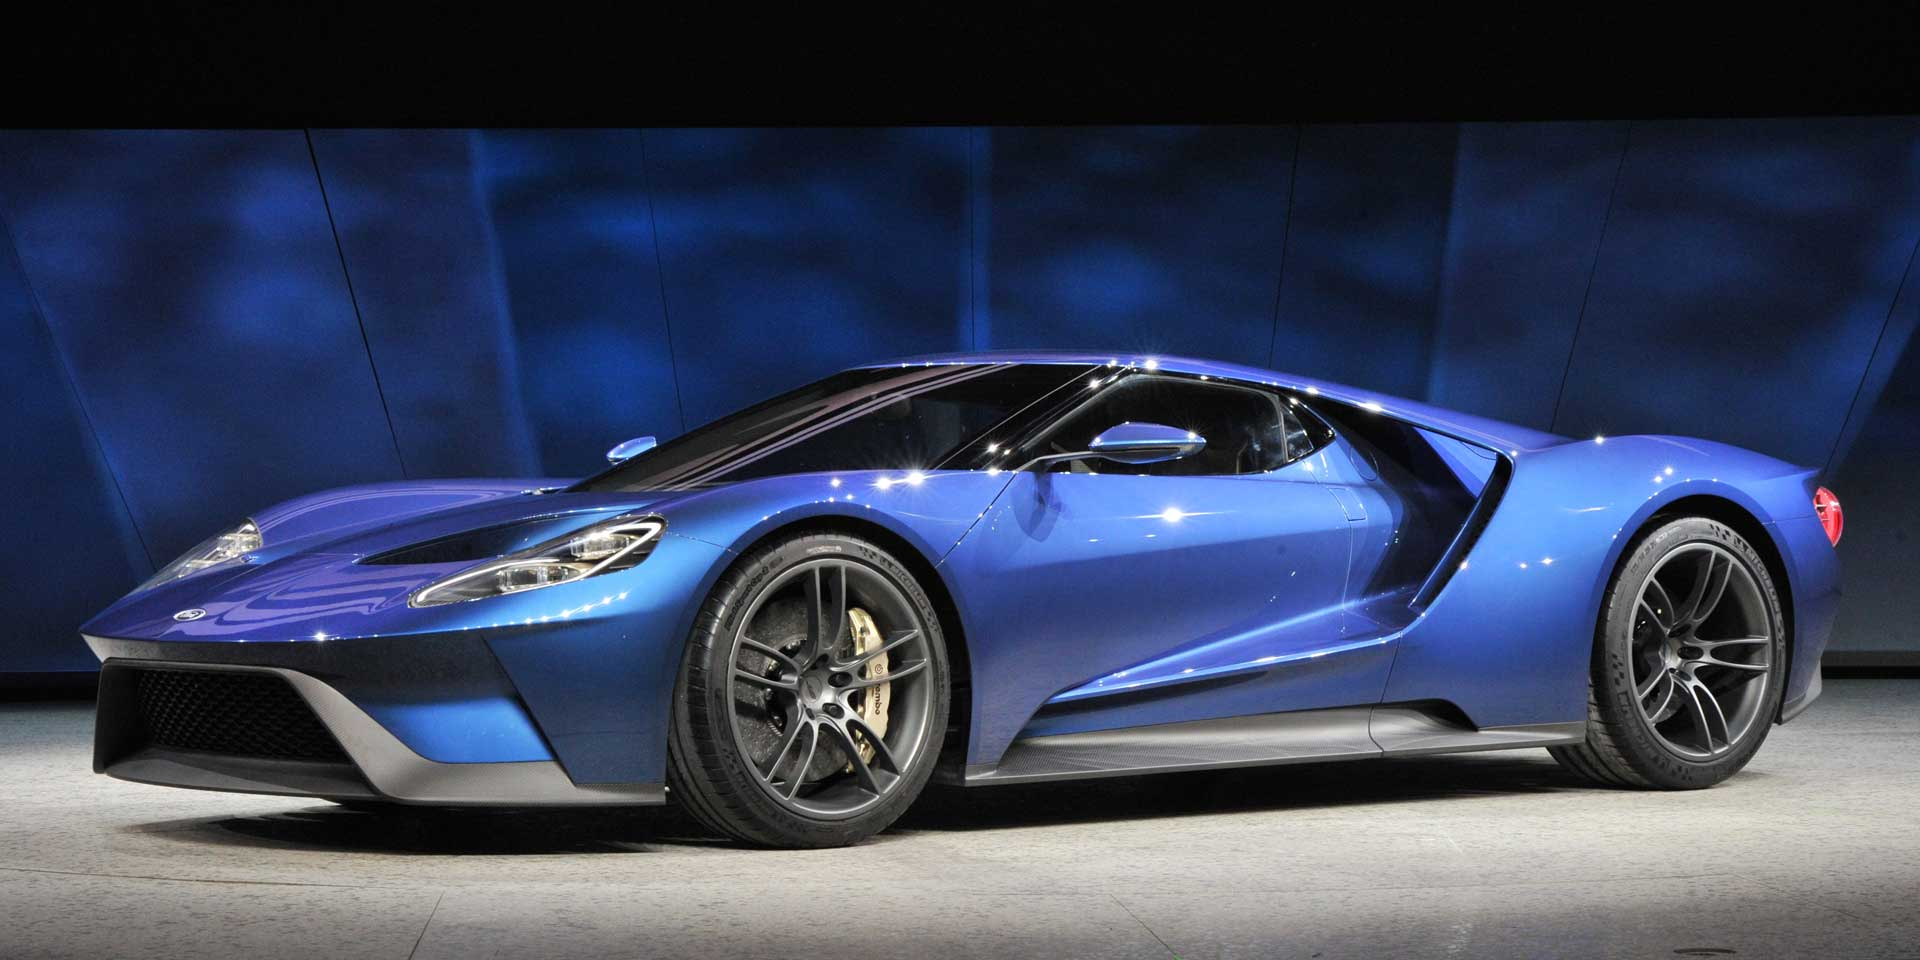 2018 2019 2020 Ford Cars: 2018 - Ford - GT - Vehicles On Display